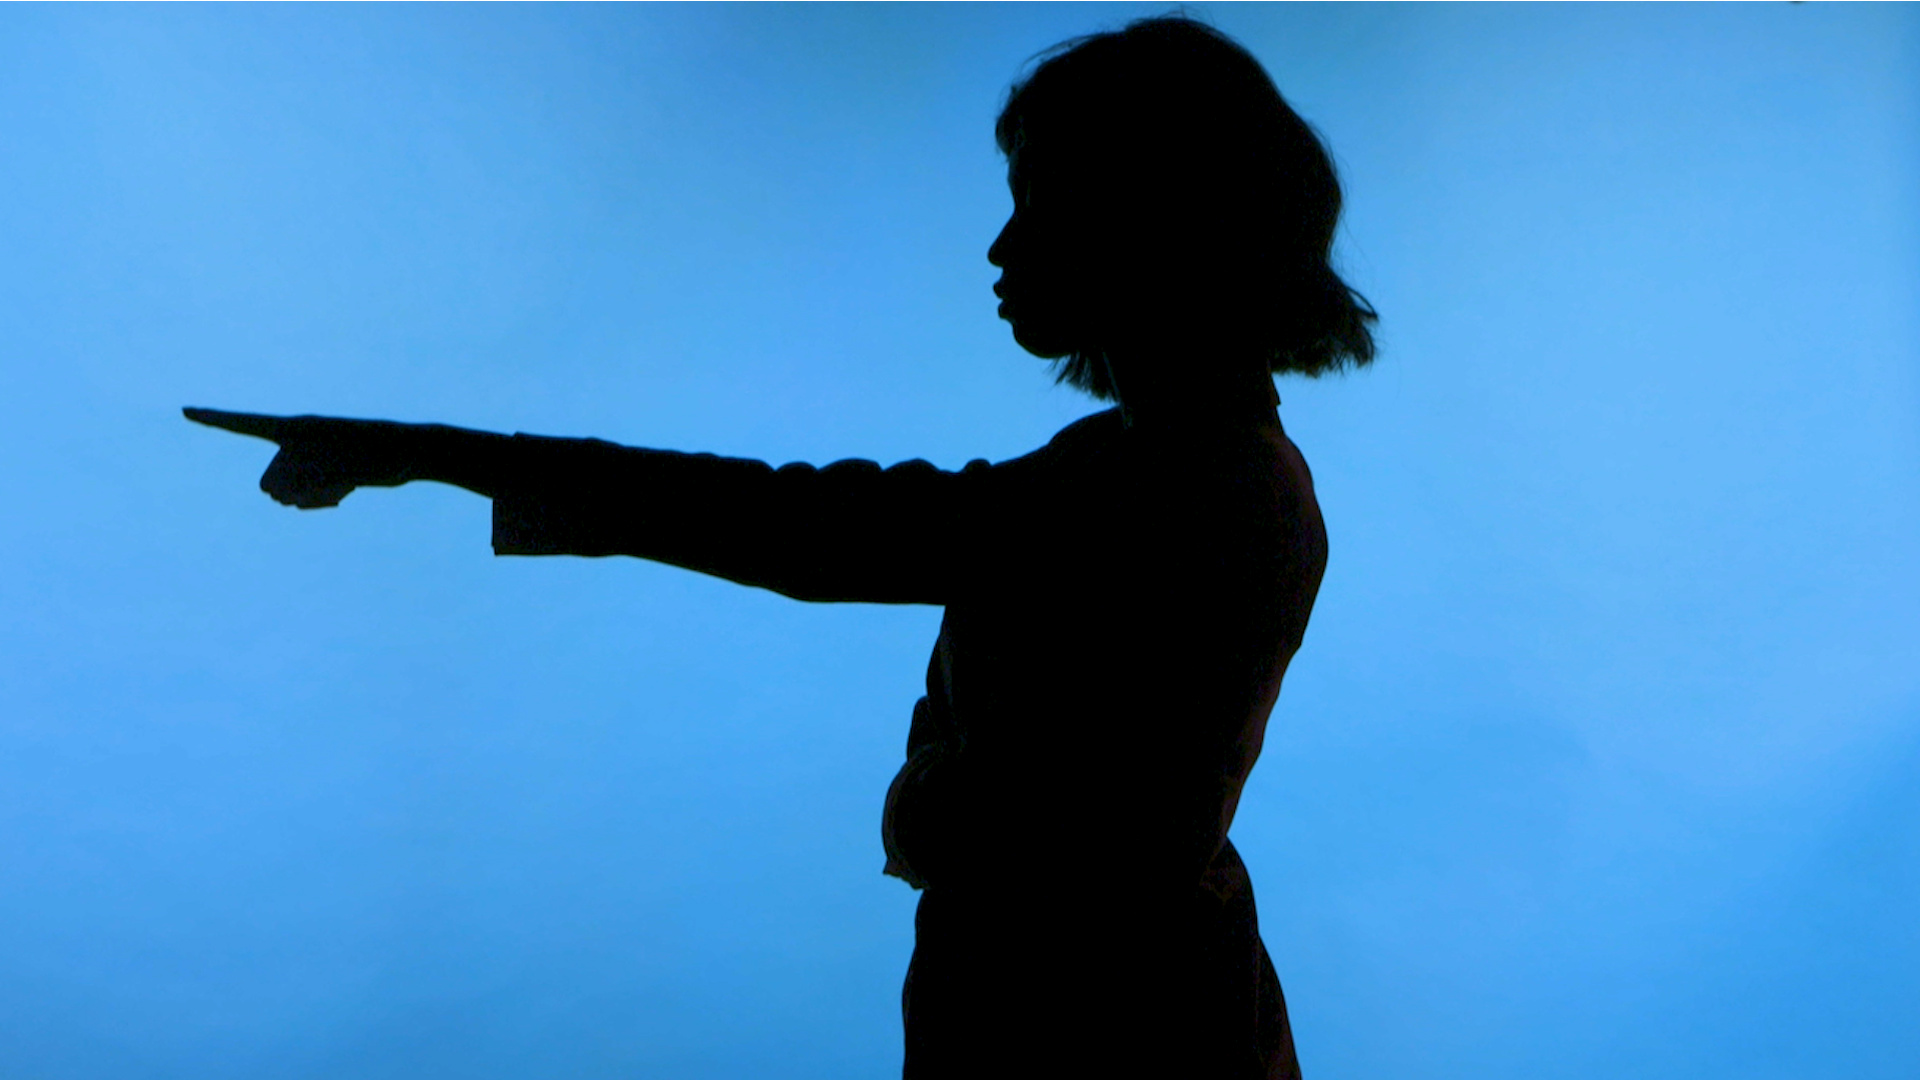 A silhouette of a woman pointing